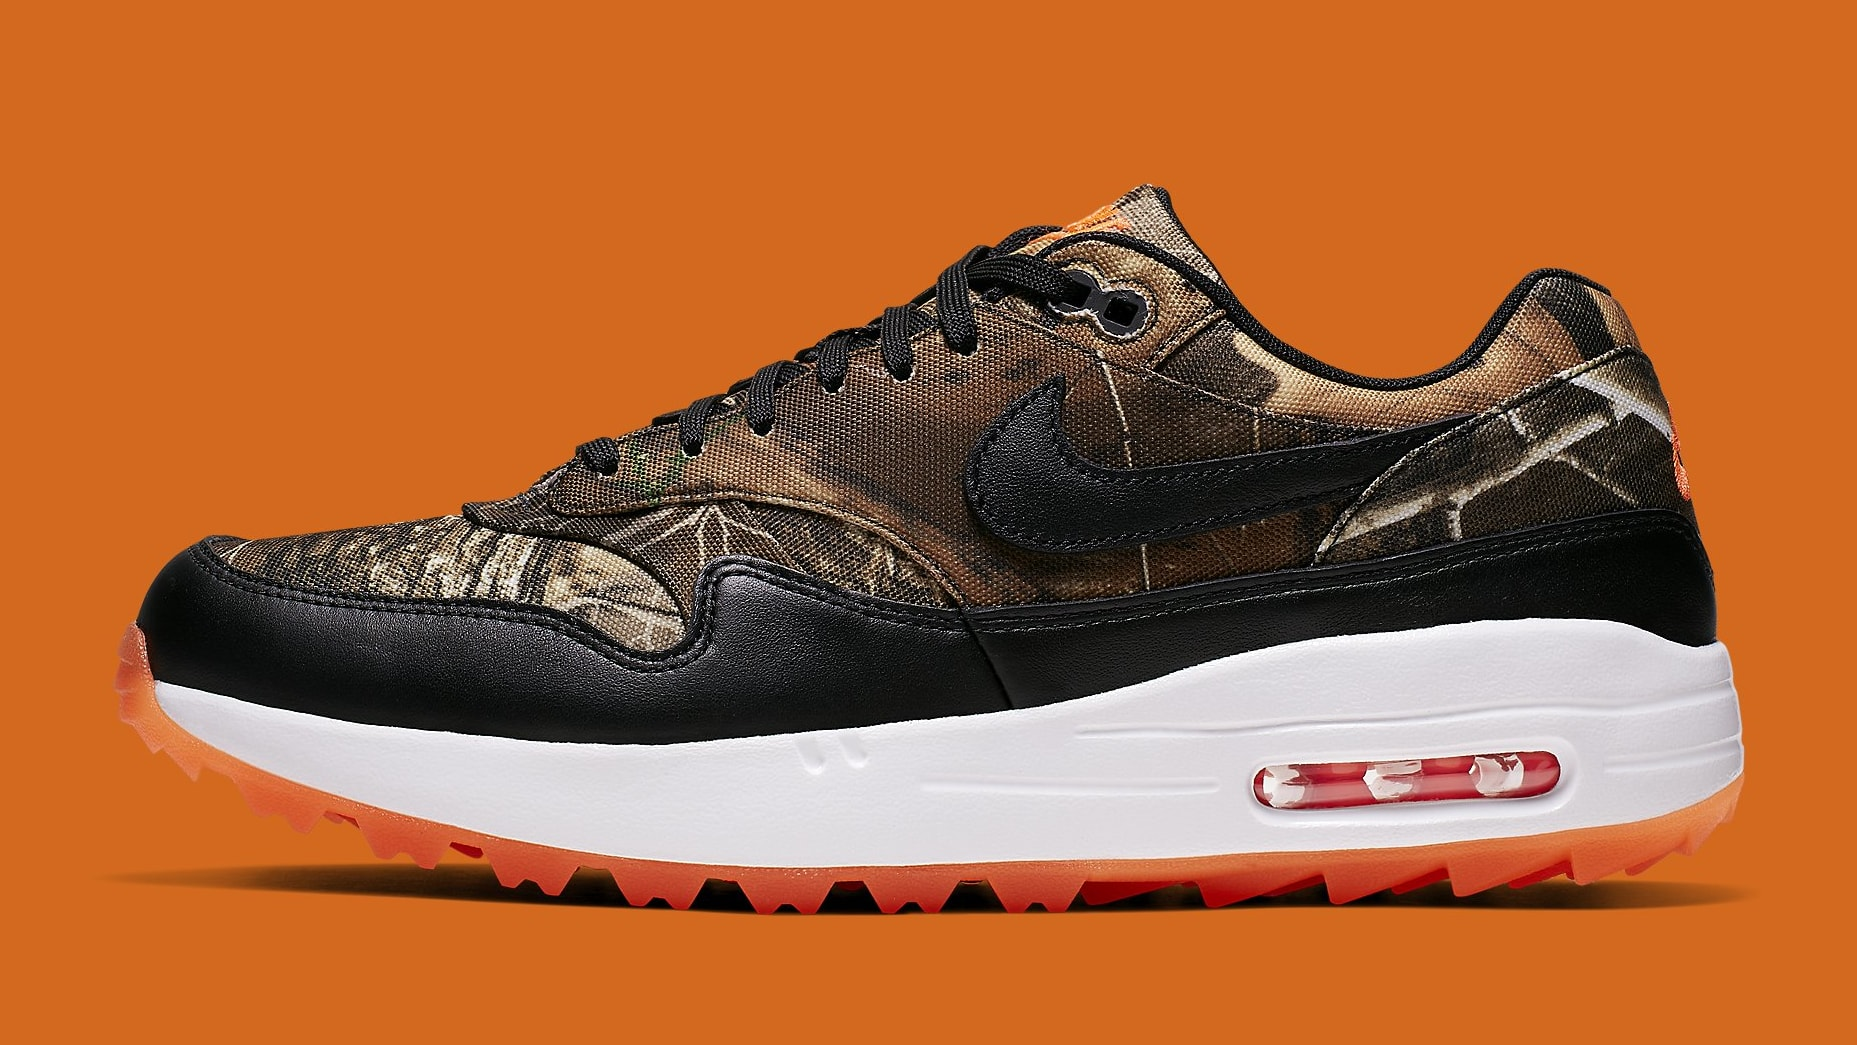 Nike Is Adding Realtree Camo to the Air Max 1 Golf Shoe